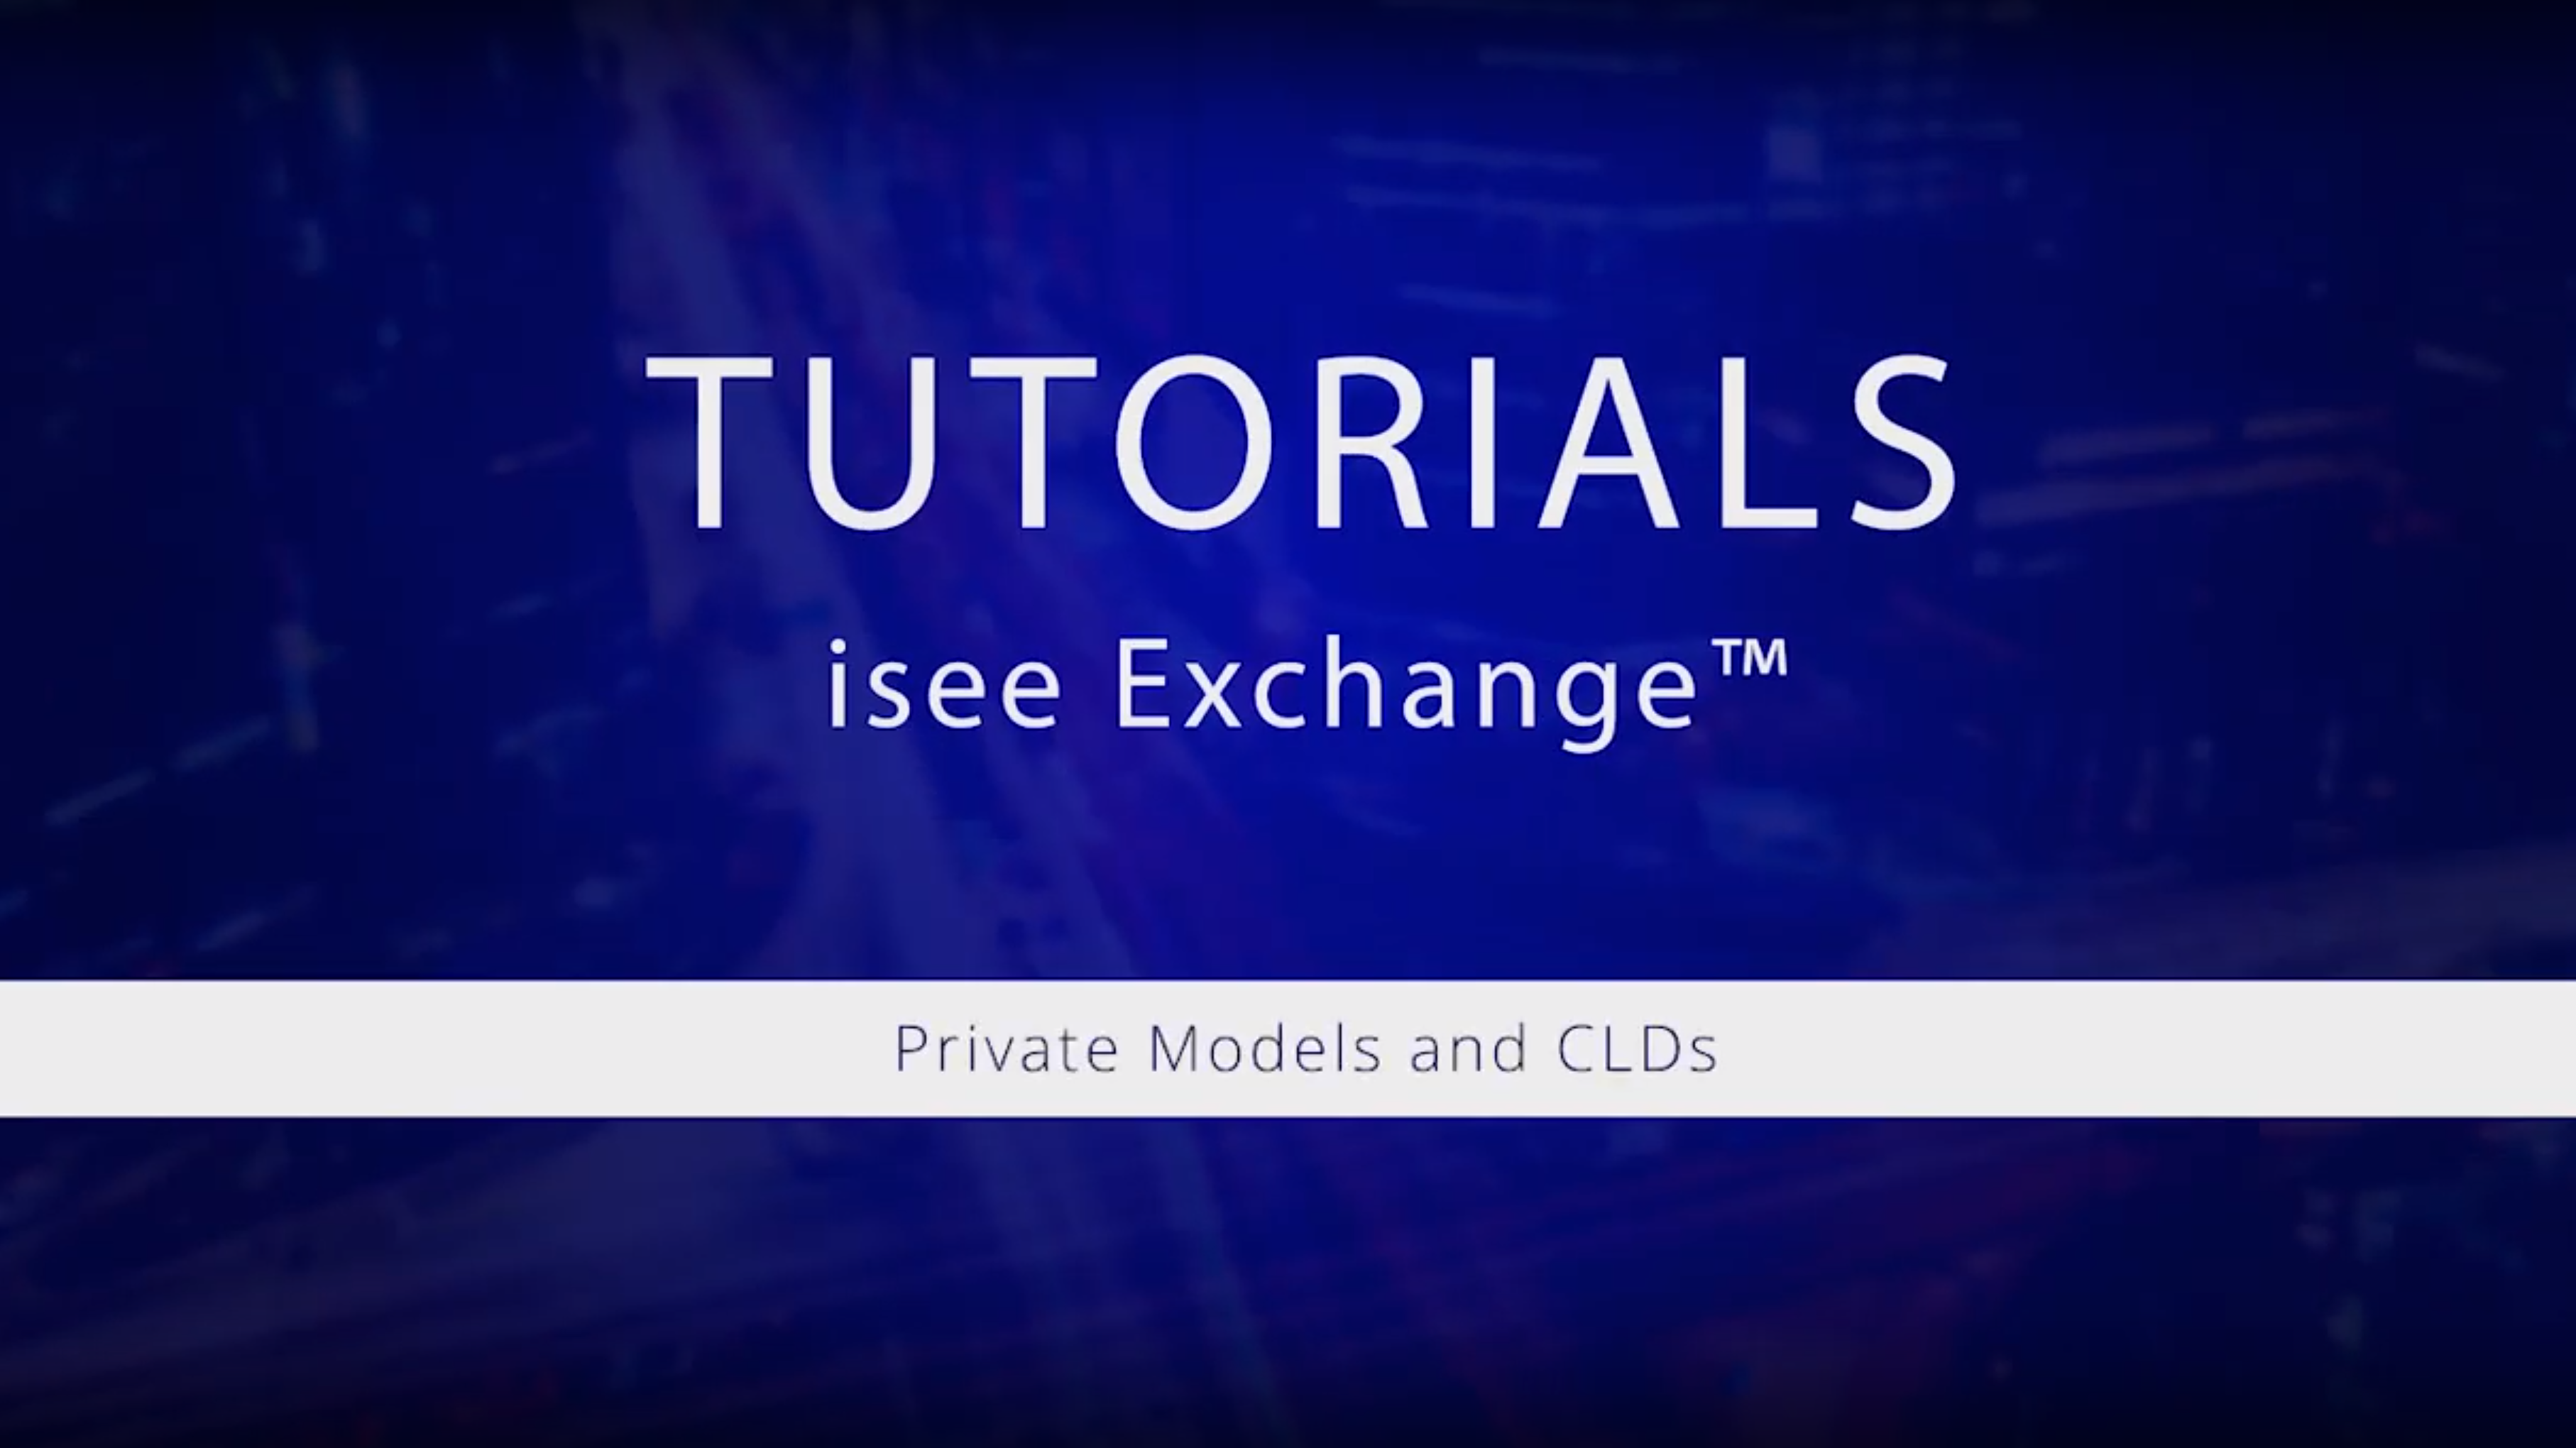 Watch isee Exchange Tutorials: Private Models and CLDs